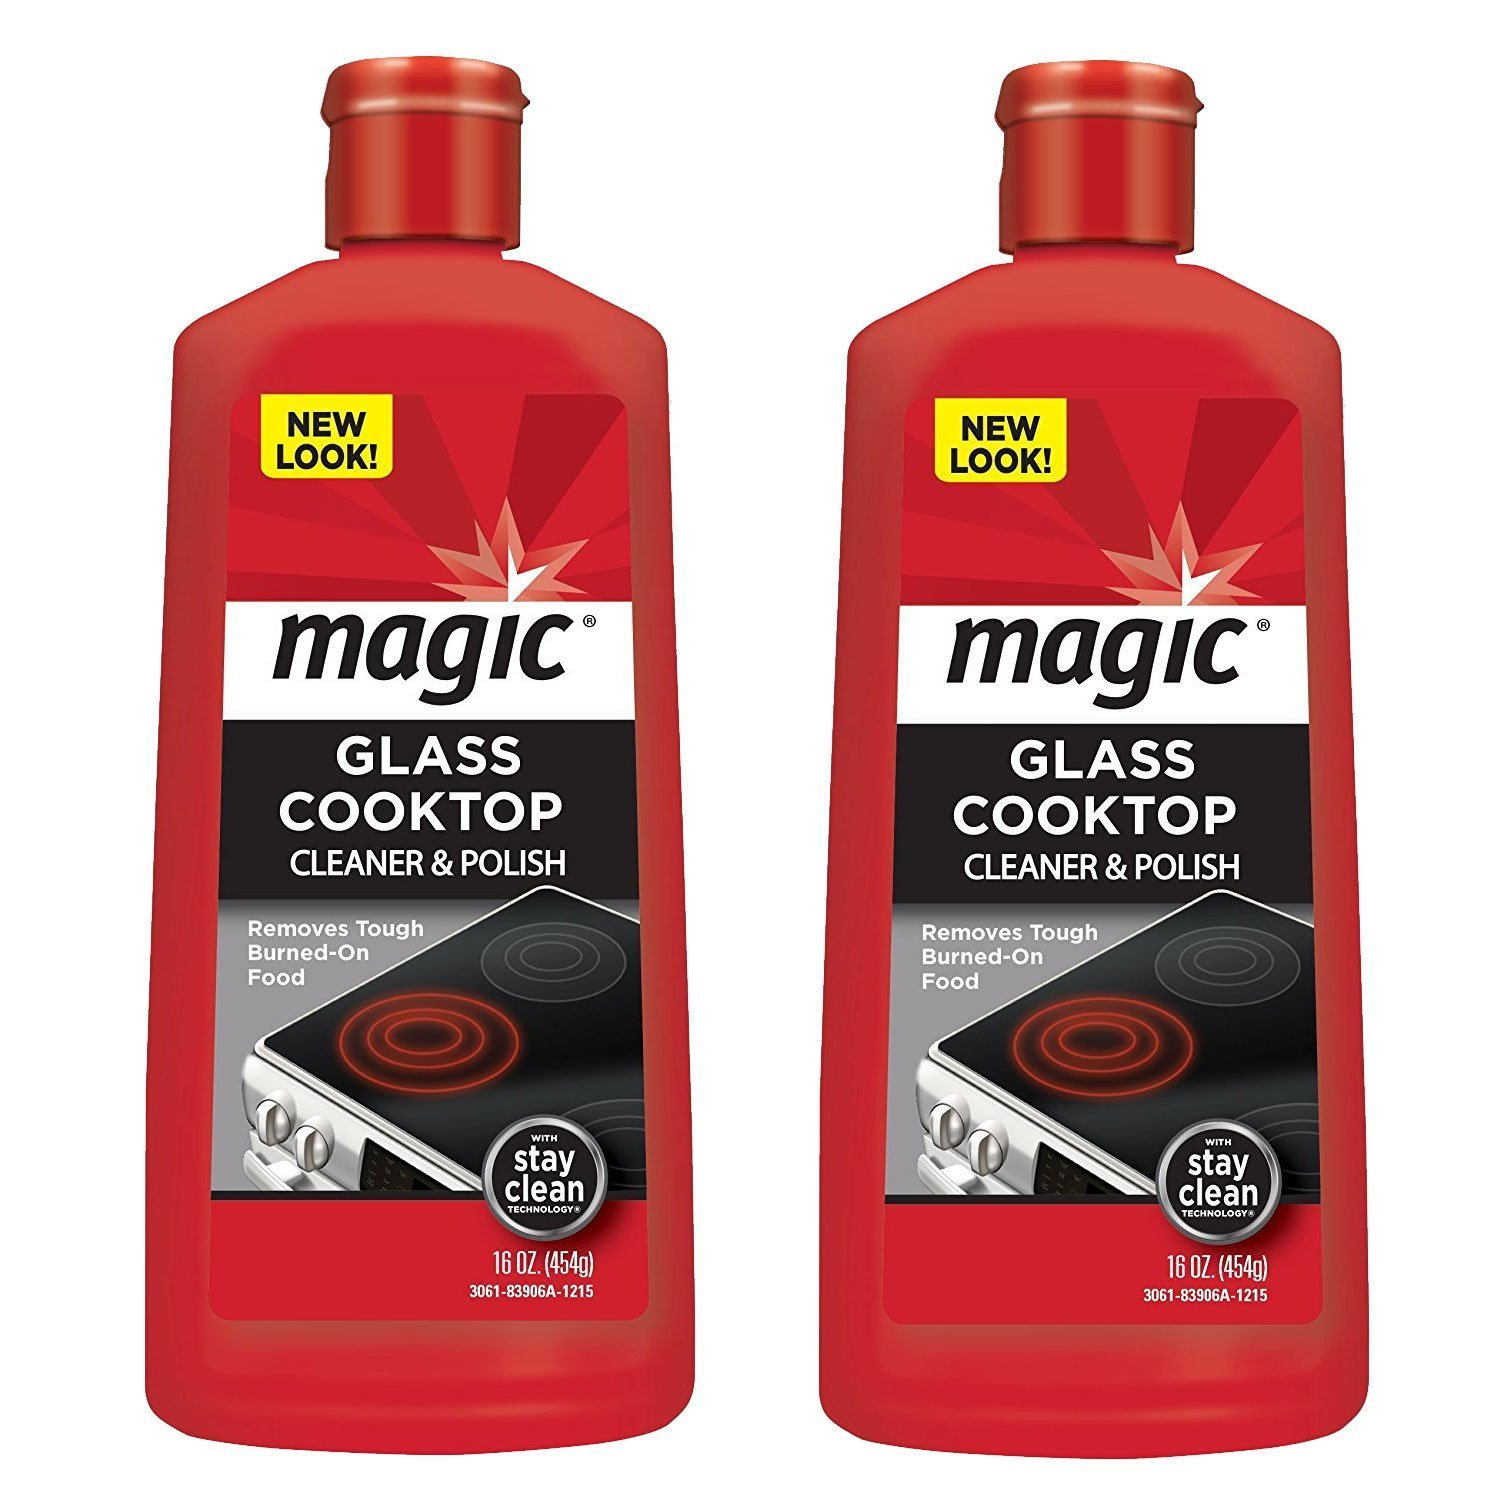 Magic Glass Cooktop Cleaner and Polish - 16 Ounce - 2 Pack - Professional Home Kitchen Cooktop Cleaner and Polish Use On Induction Ceramic Gas Portable Electric